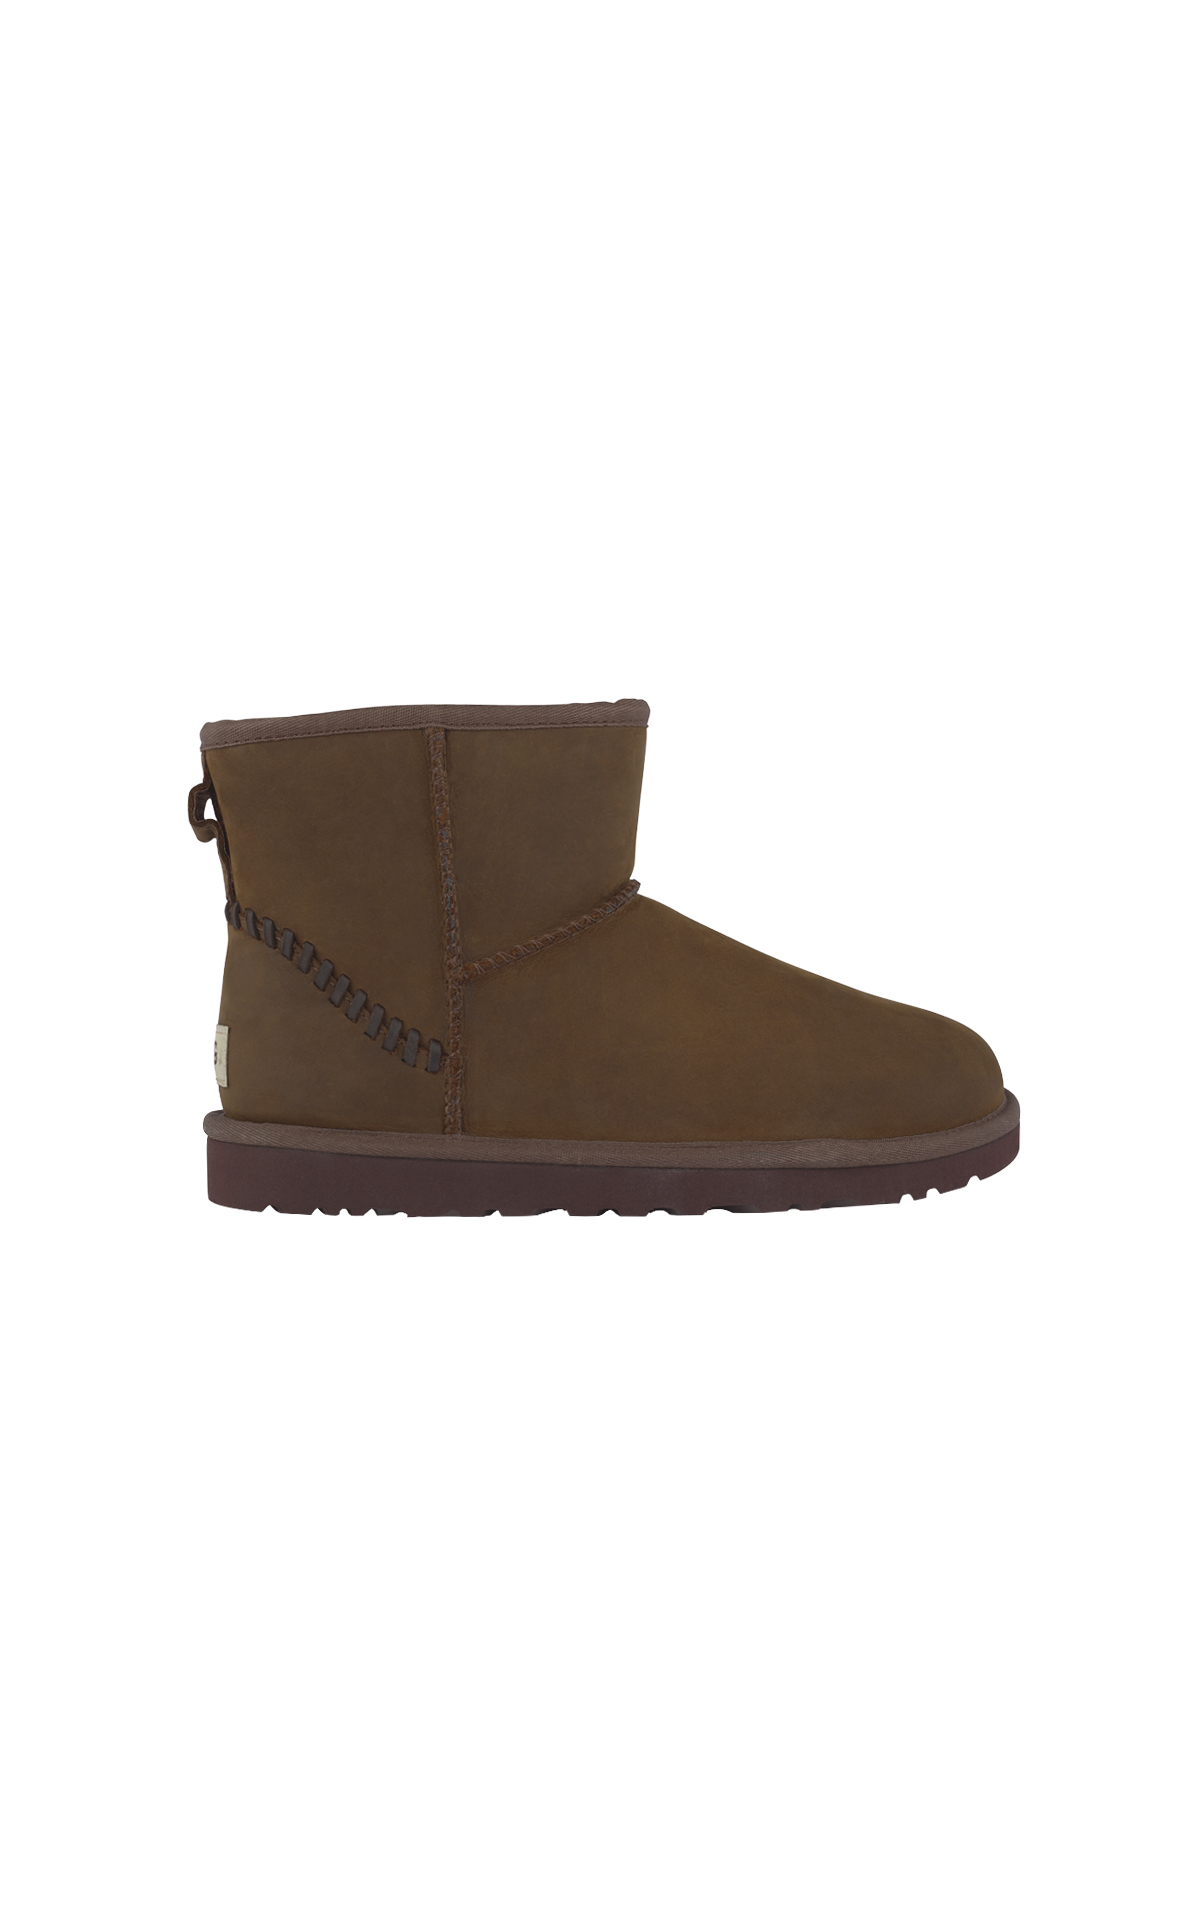 Brown ankle boot man UGG